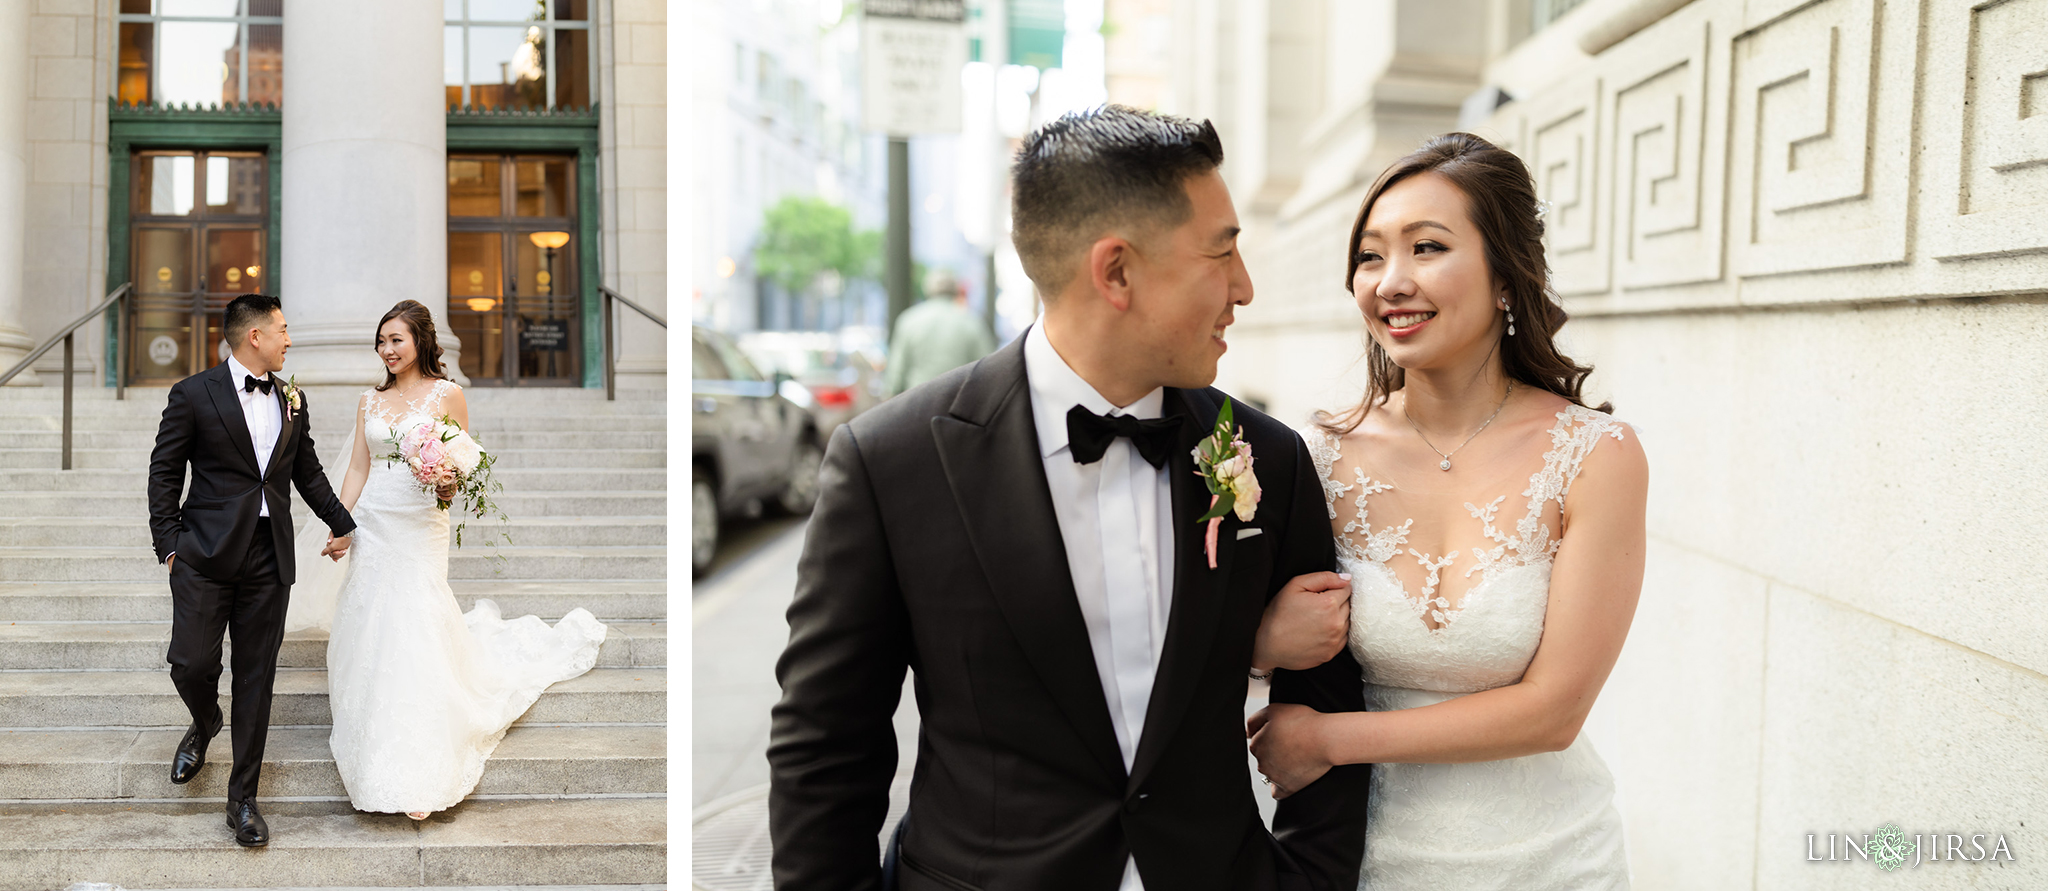 24 Bently Reserve San Francisco Destination Wedding Photographer